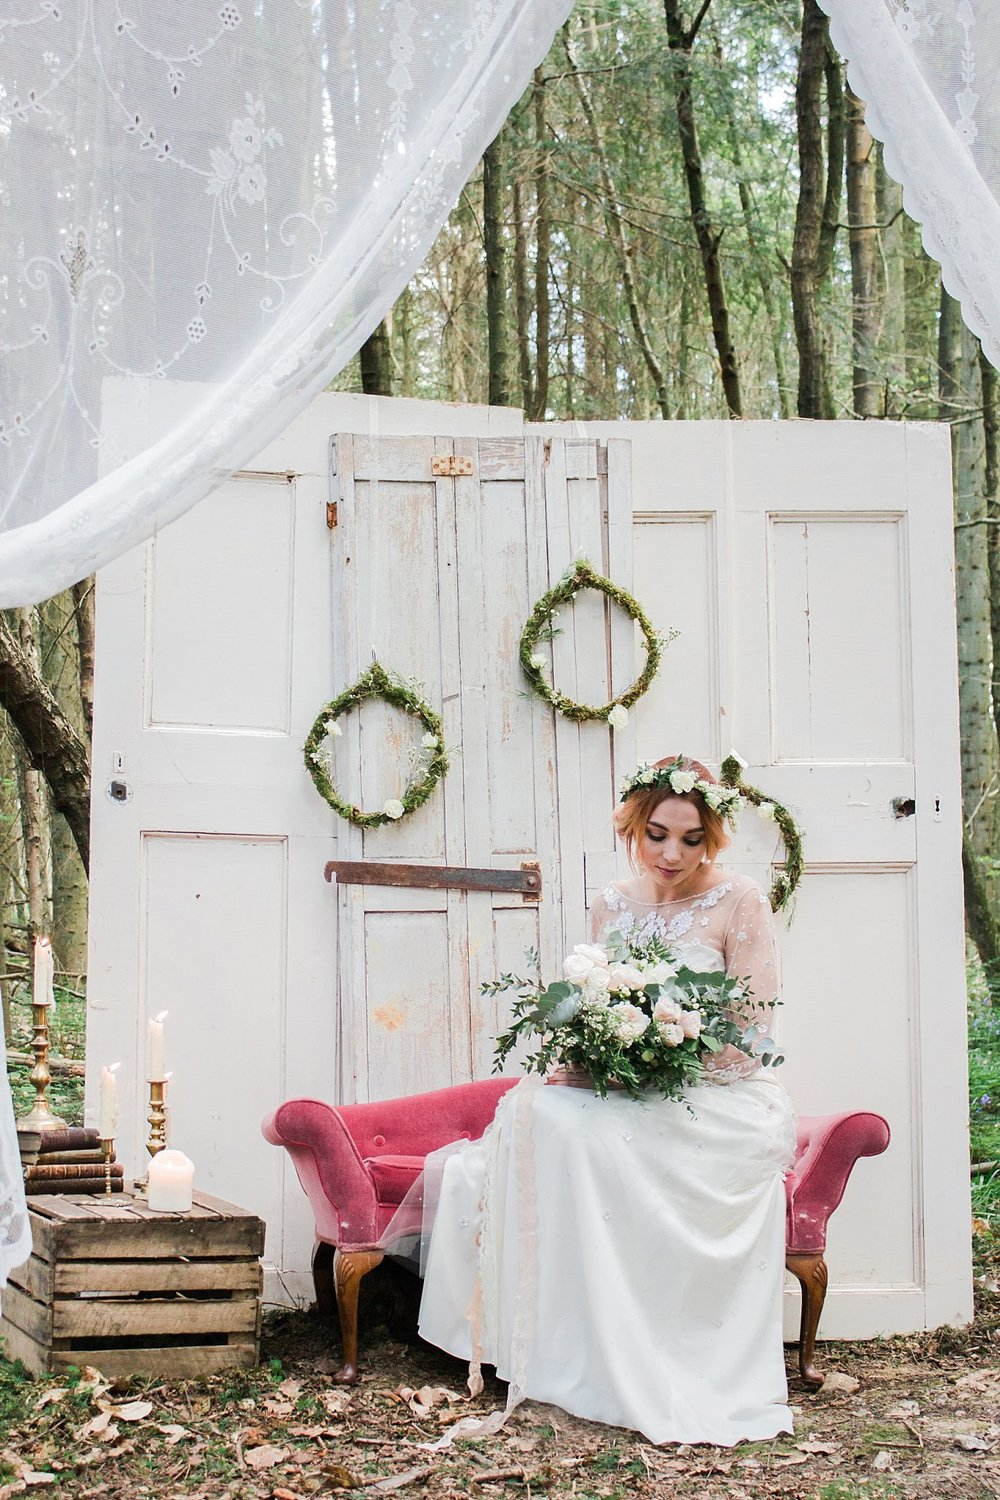 Vintage Amy Wedding Styling-Whimsical Woodland Wedding Inspiration Kent-Vintage Wedding Lounge Hiring and Styling Kent